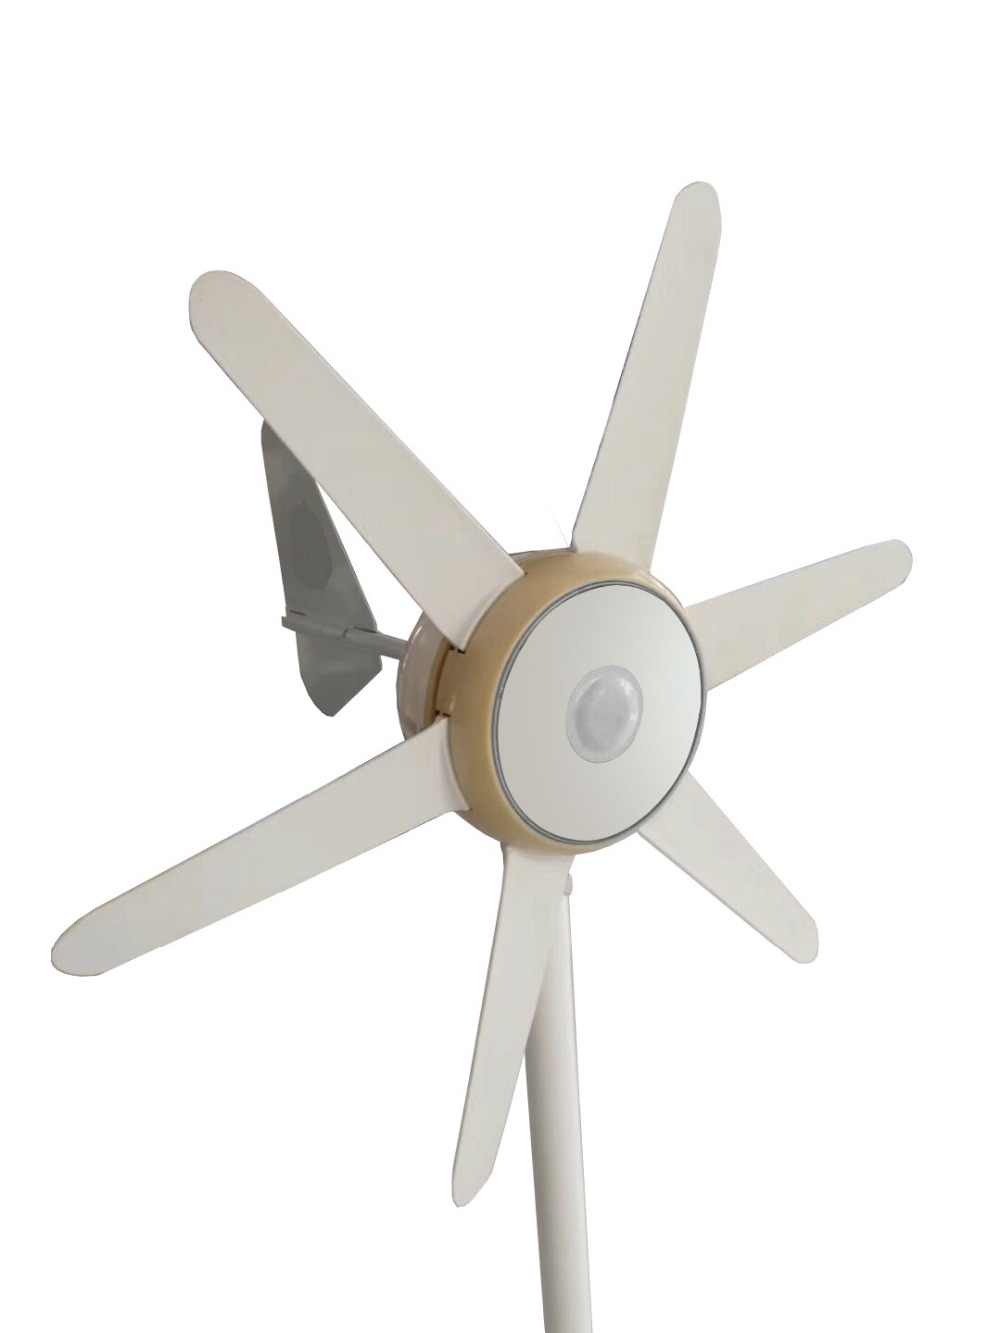 M-300 Power System 12V Wind turbine Generator With 6 Pieces Blades 1M/S Start Wind Speed Wind Power Generators victor lyatkher m wind power turbine design selection and optimization